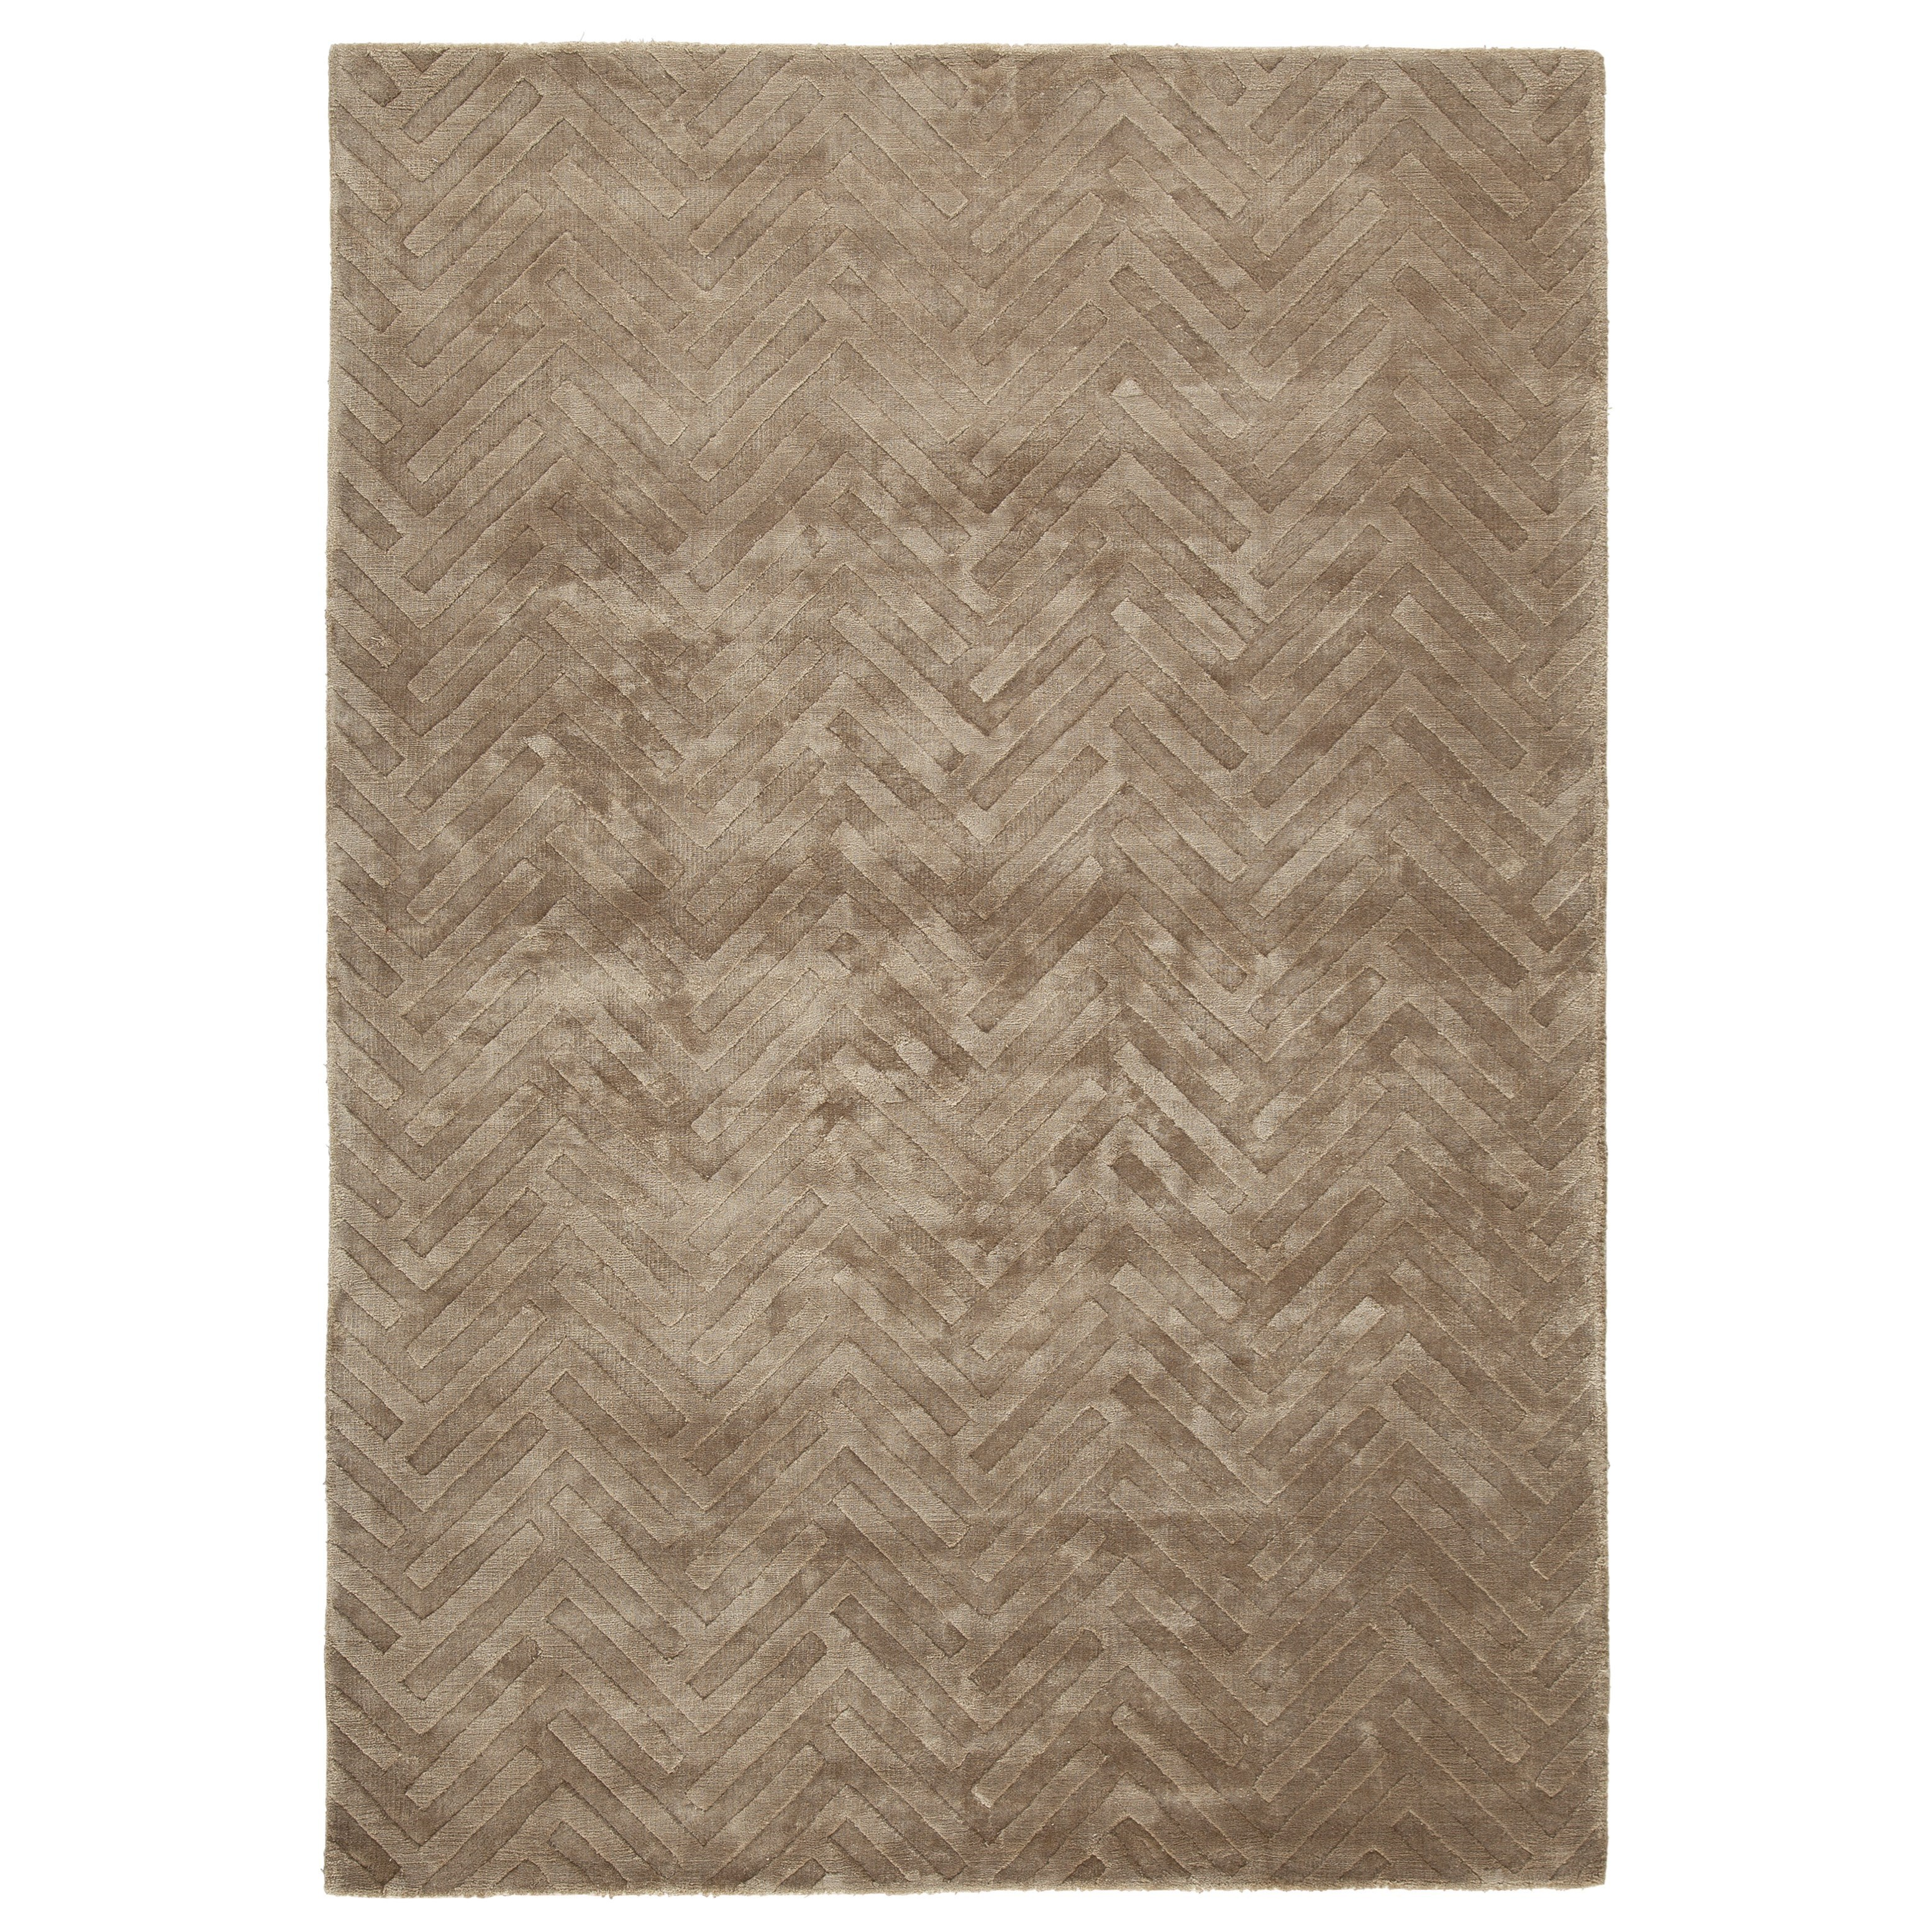 Contemporary Area Rugs Kanella Gold Large Rug by Signature Design by Ashley at Northeast Factory Direct